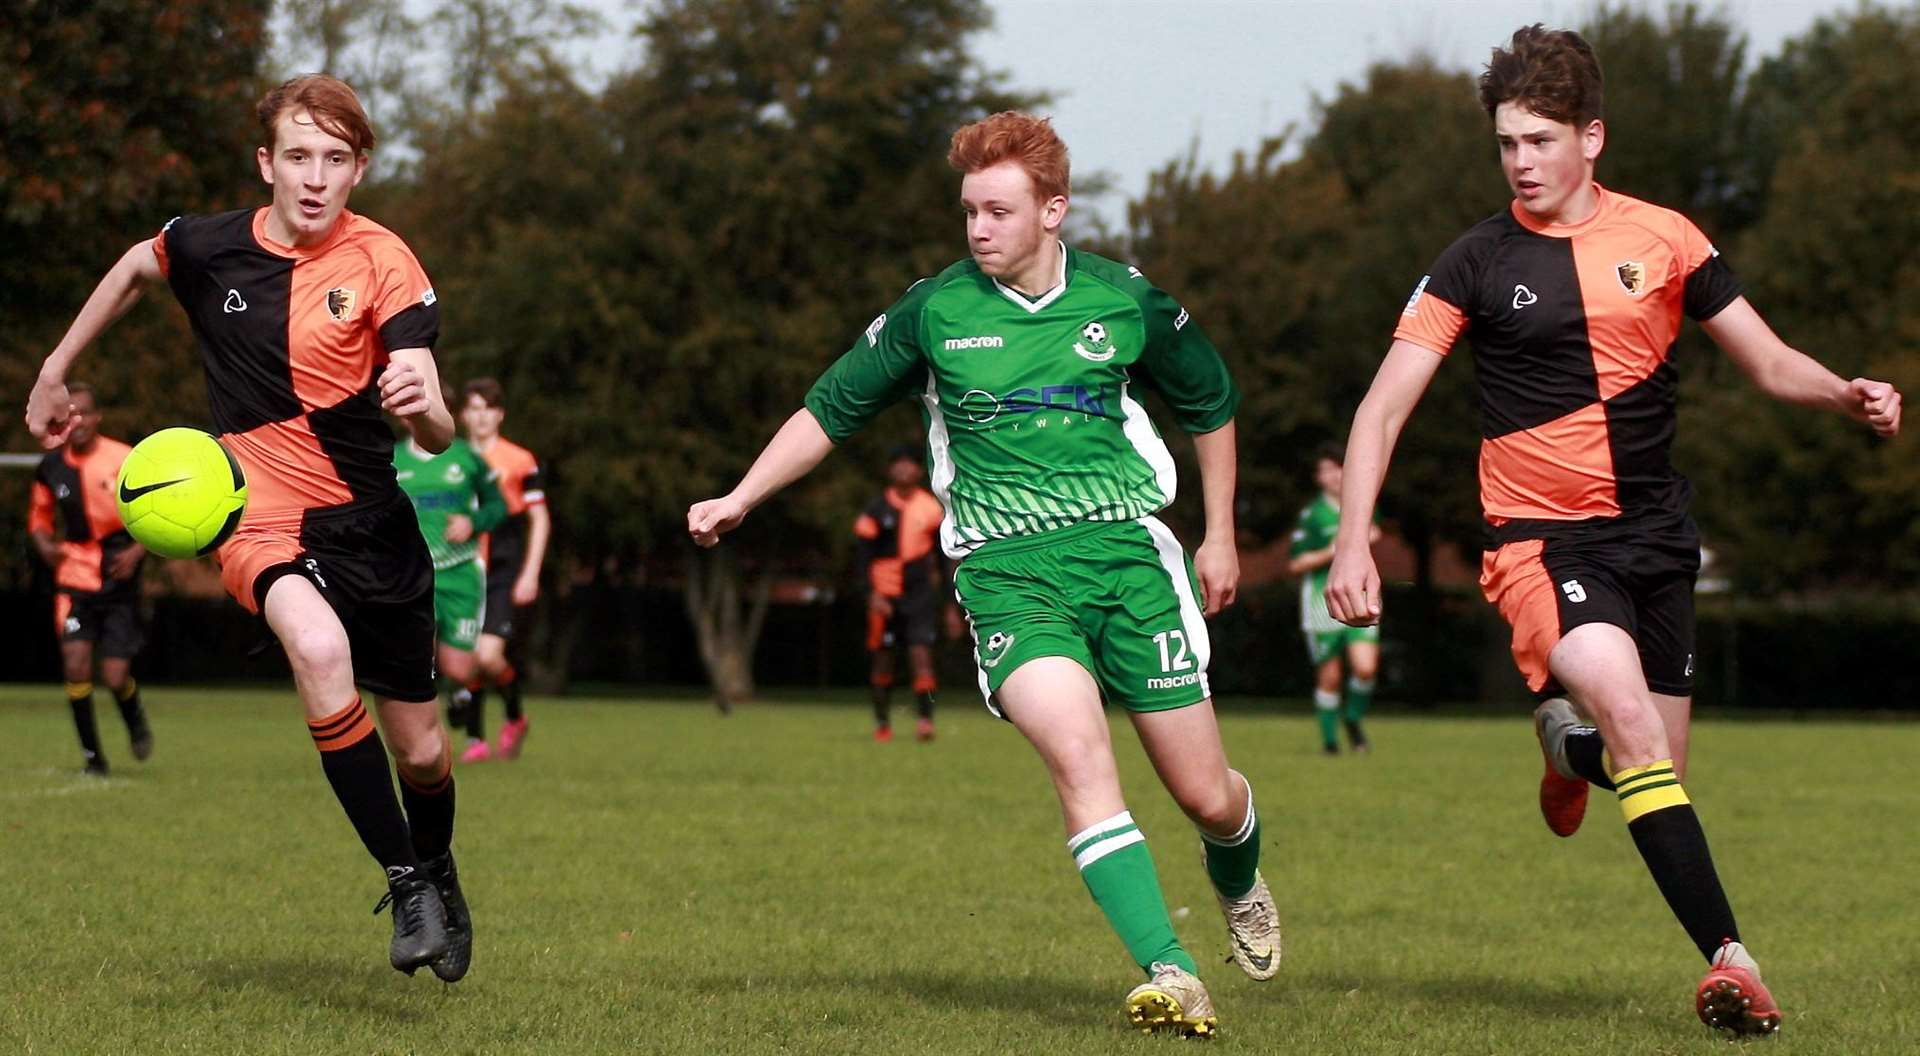 Pegasus 81 Flyers under-18s (green) give chase against Eagles Gold under-18s Picture: Phil Lee FM18684290